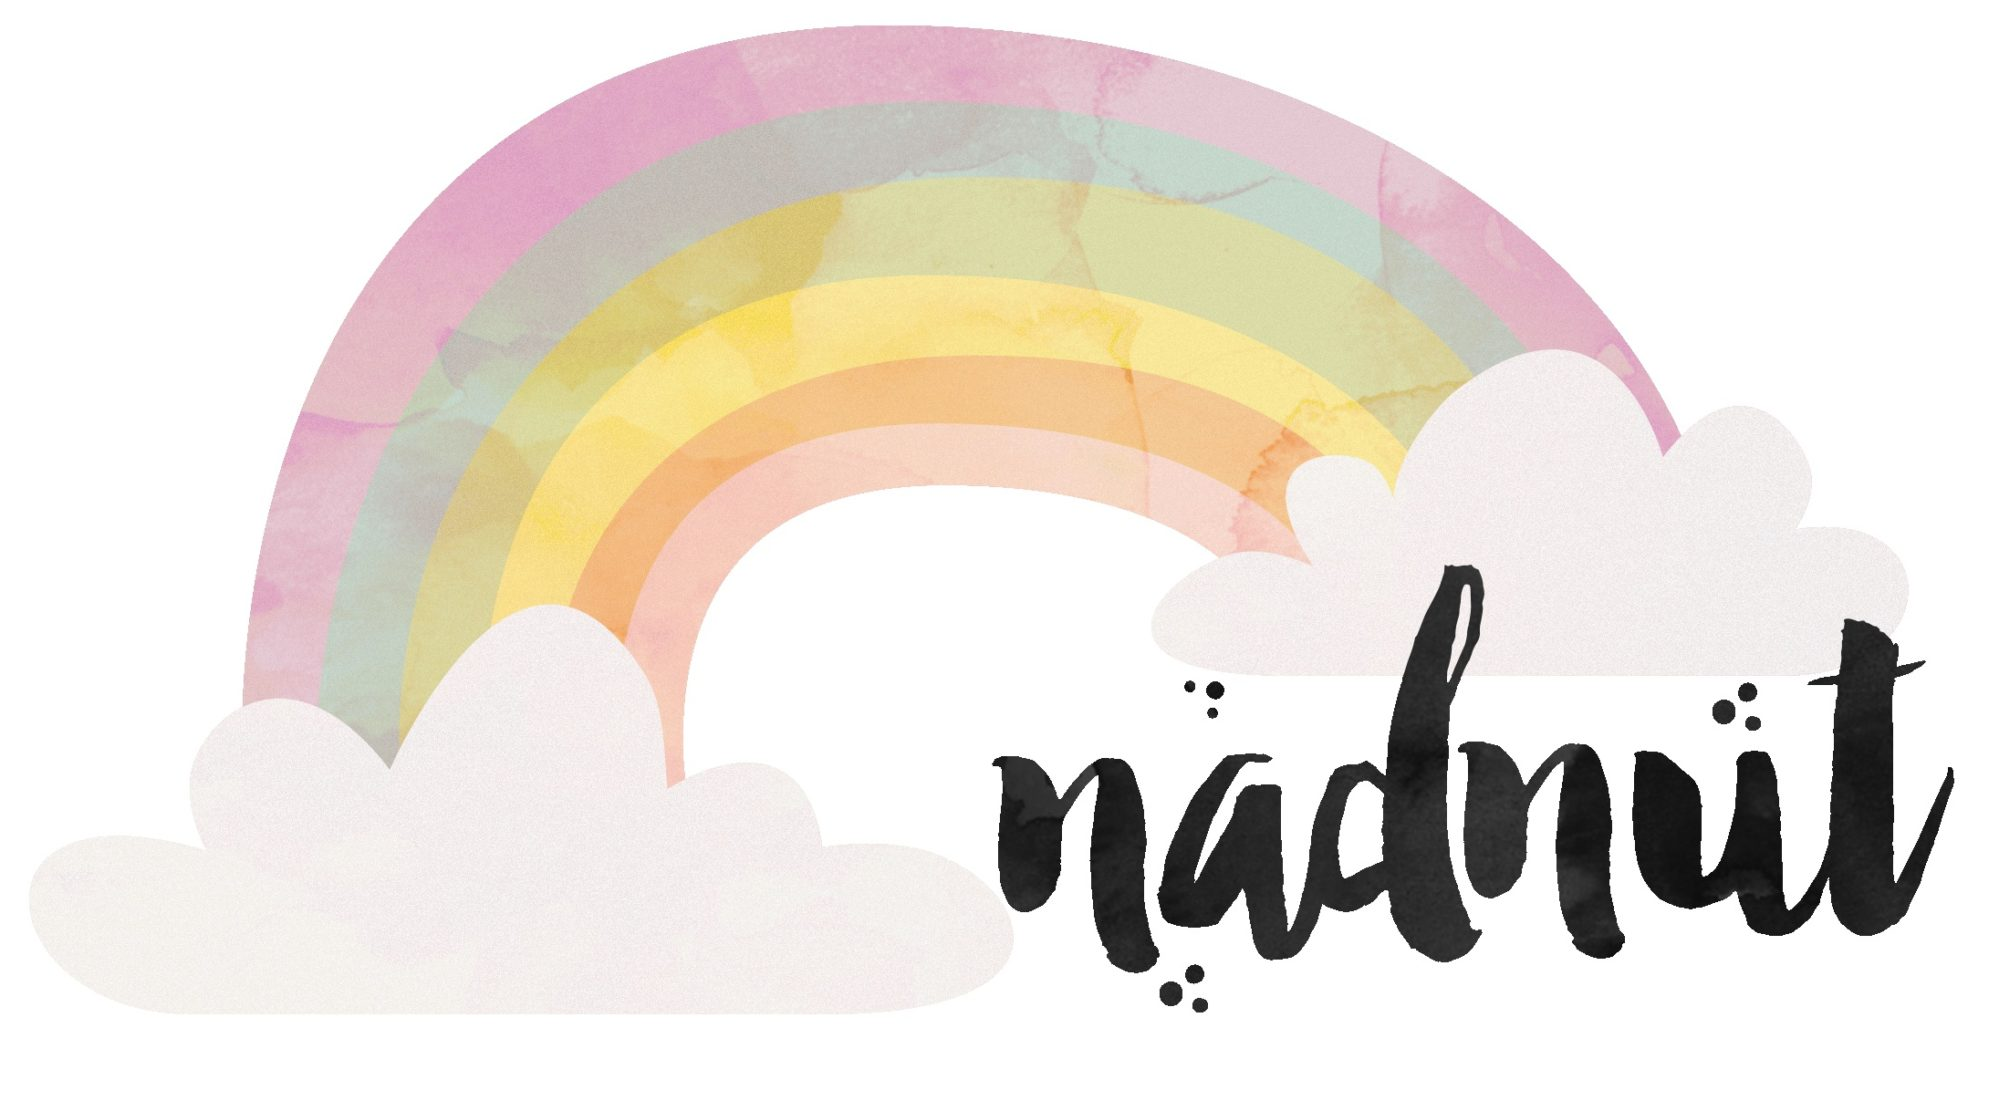 NADNUT.com – Singapore Parenting and Lifestyle Blog